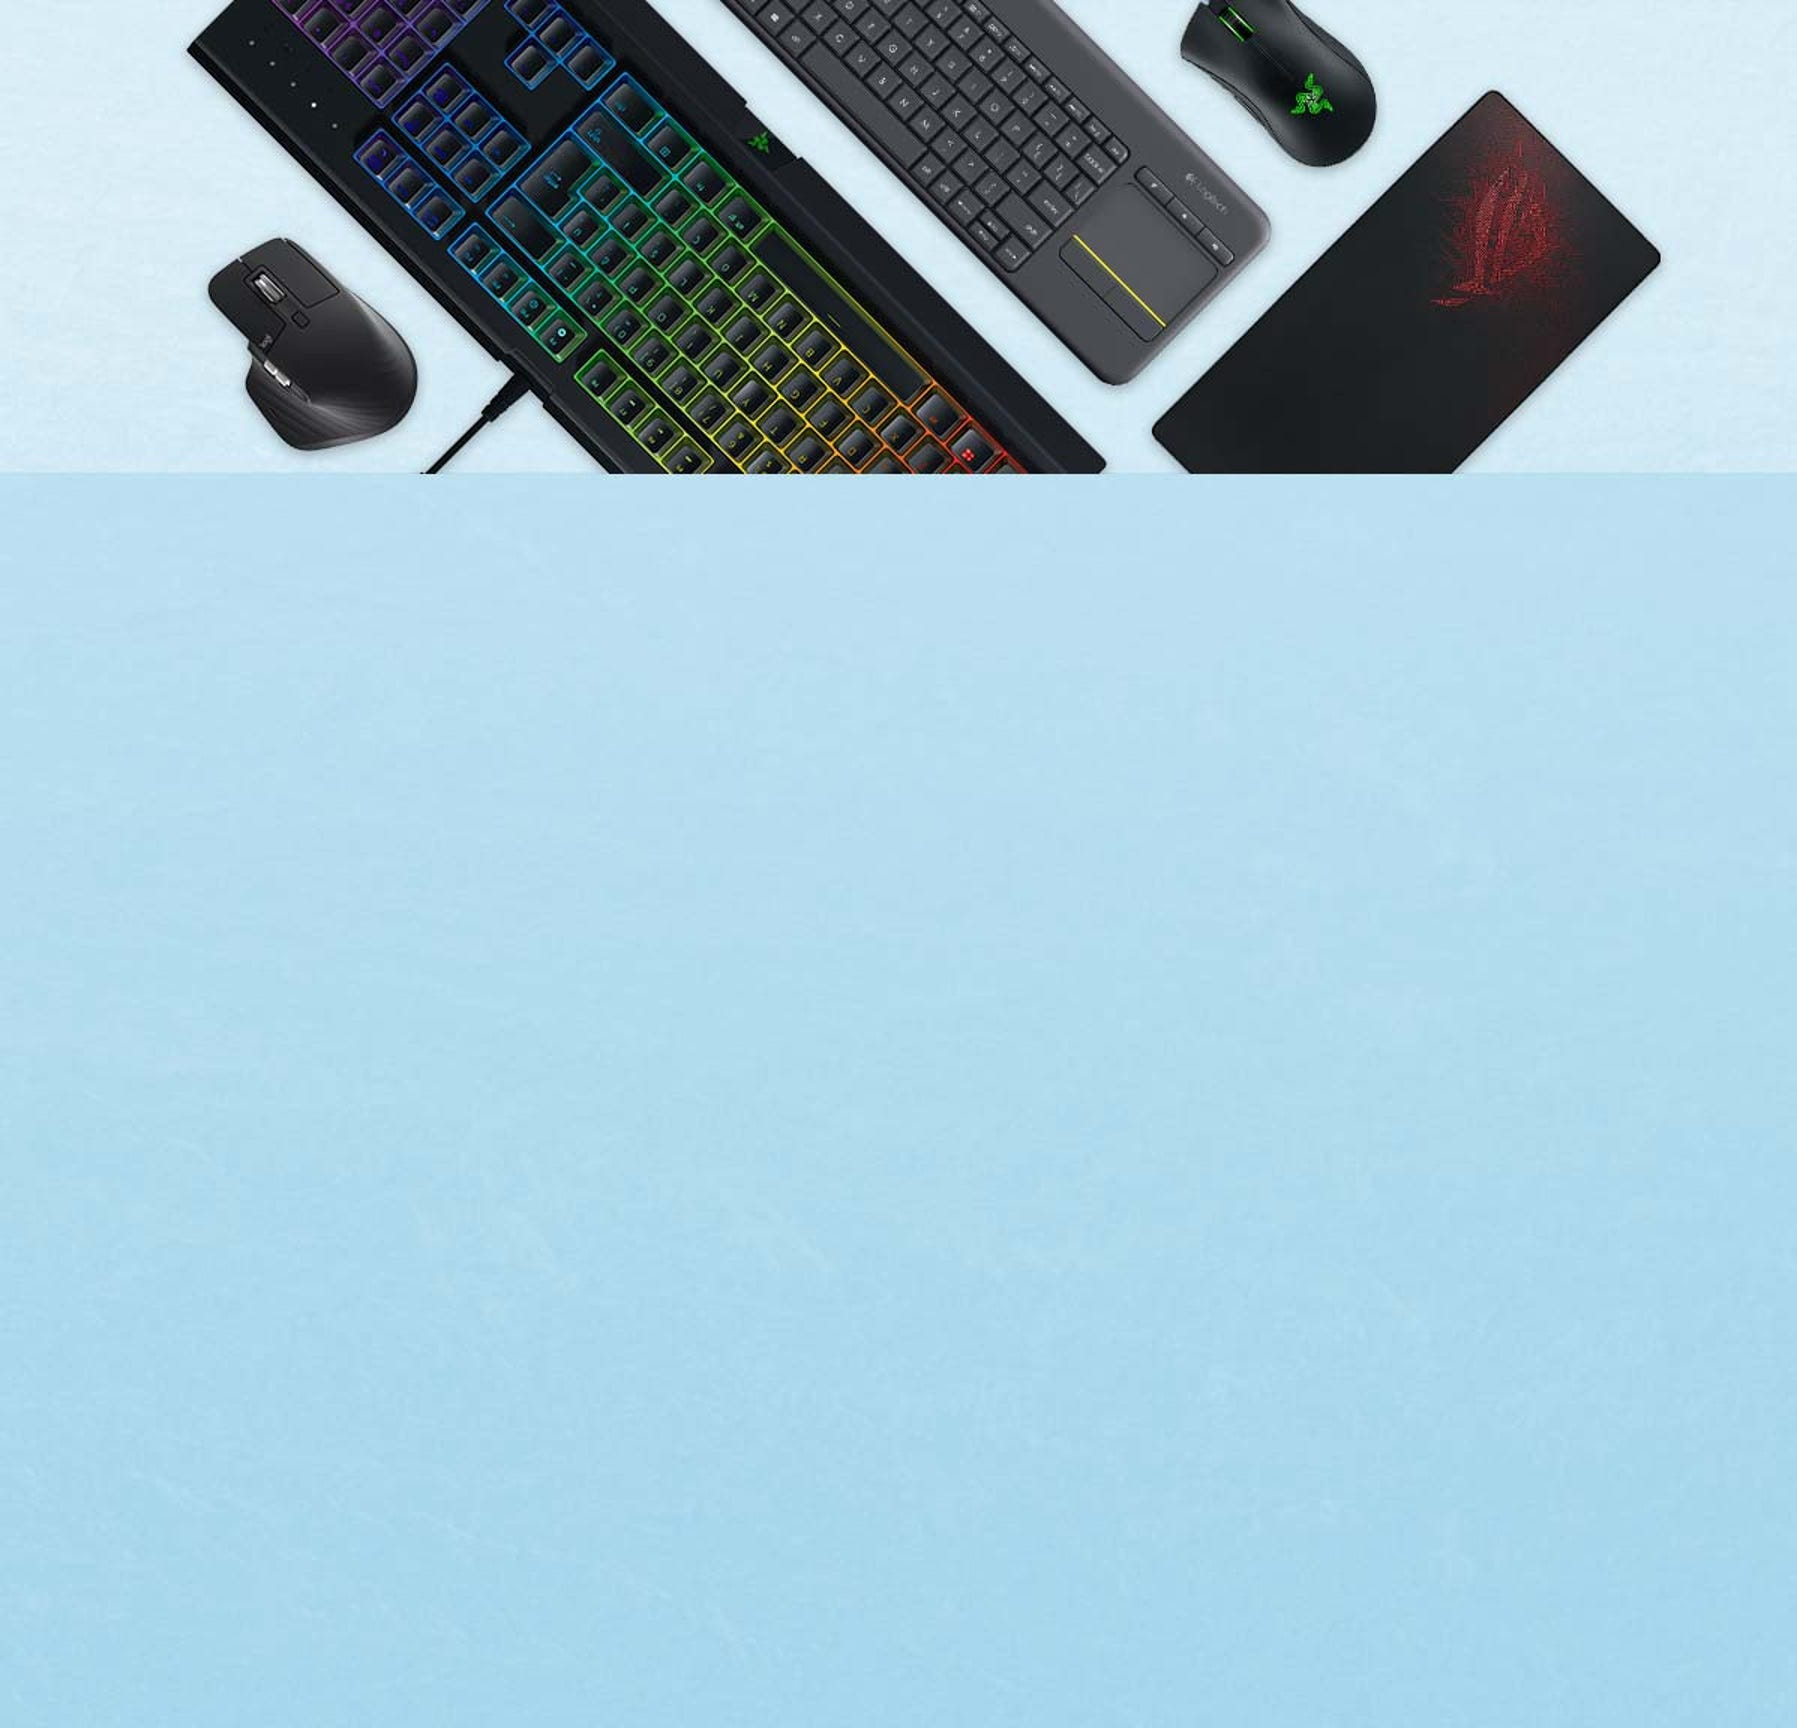 Shop Mice & Keyboards for Computers & Laptops | Best Buy Canada